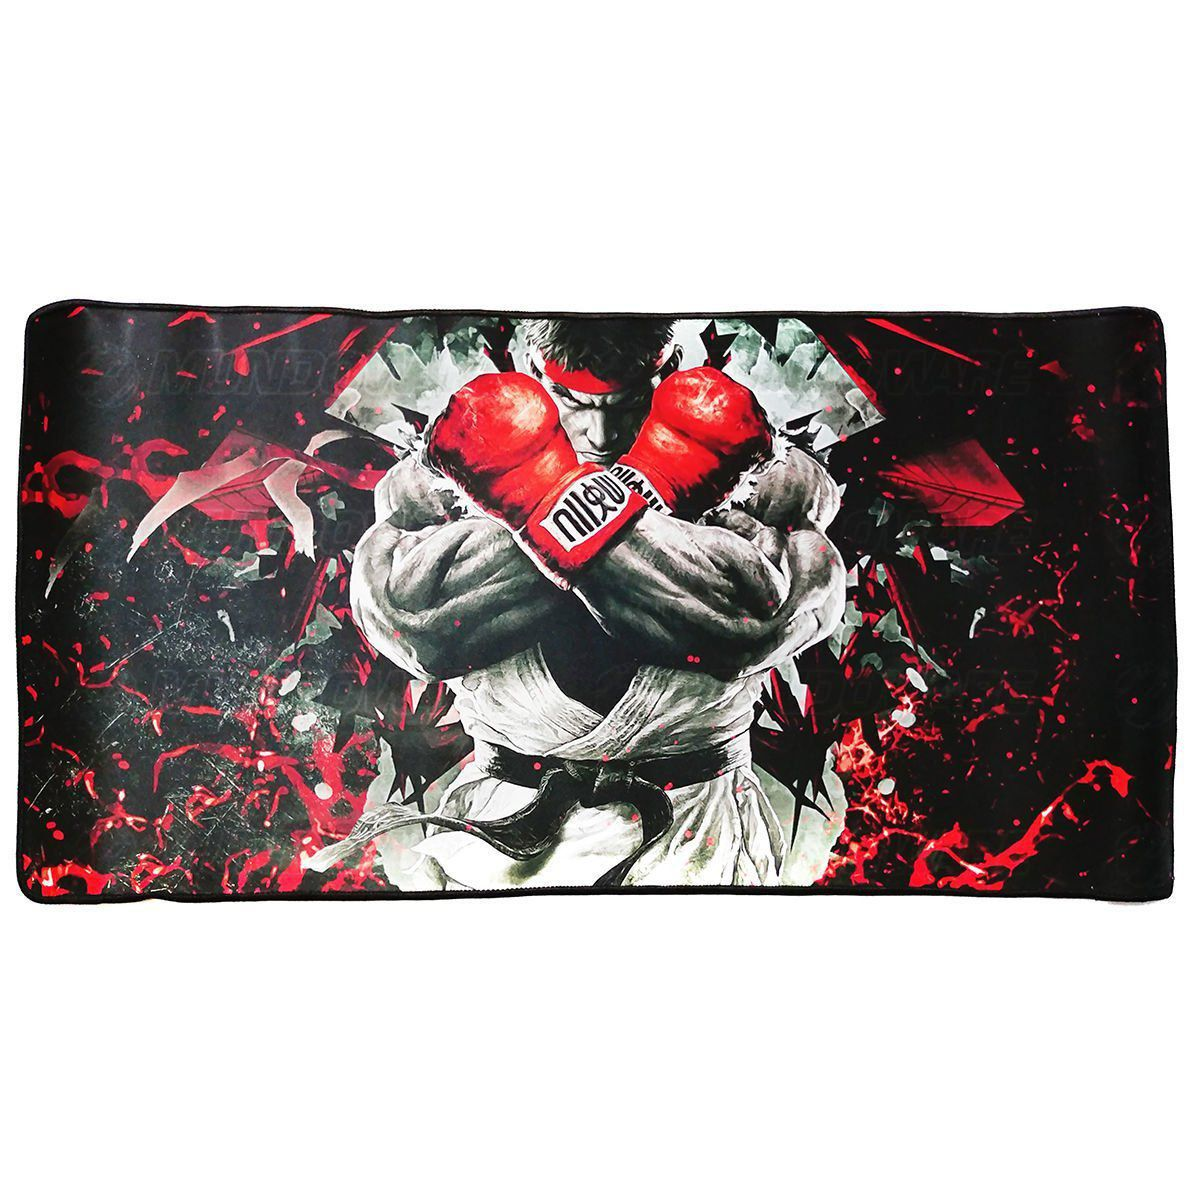 Mouse Pad Extra Grande Gamer 700x350x3mm Bordas Costuradas Base Antiderrapante Boxeador Exbom MP-7035C